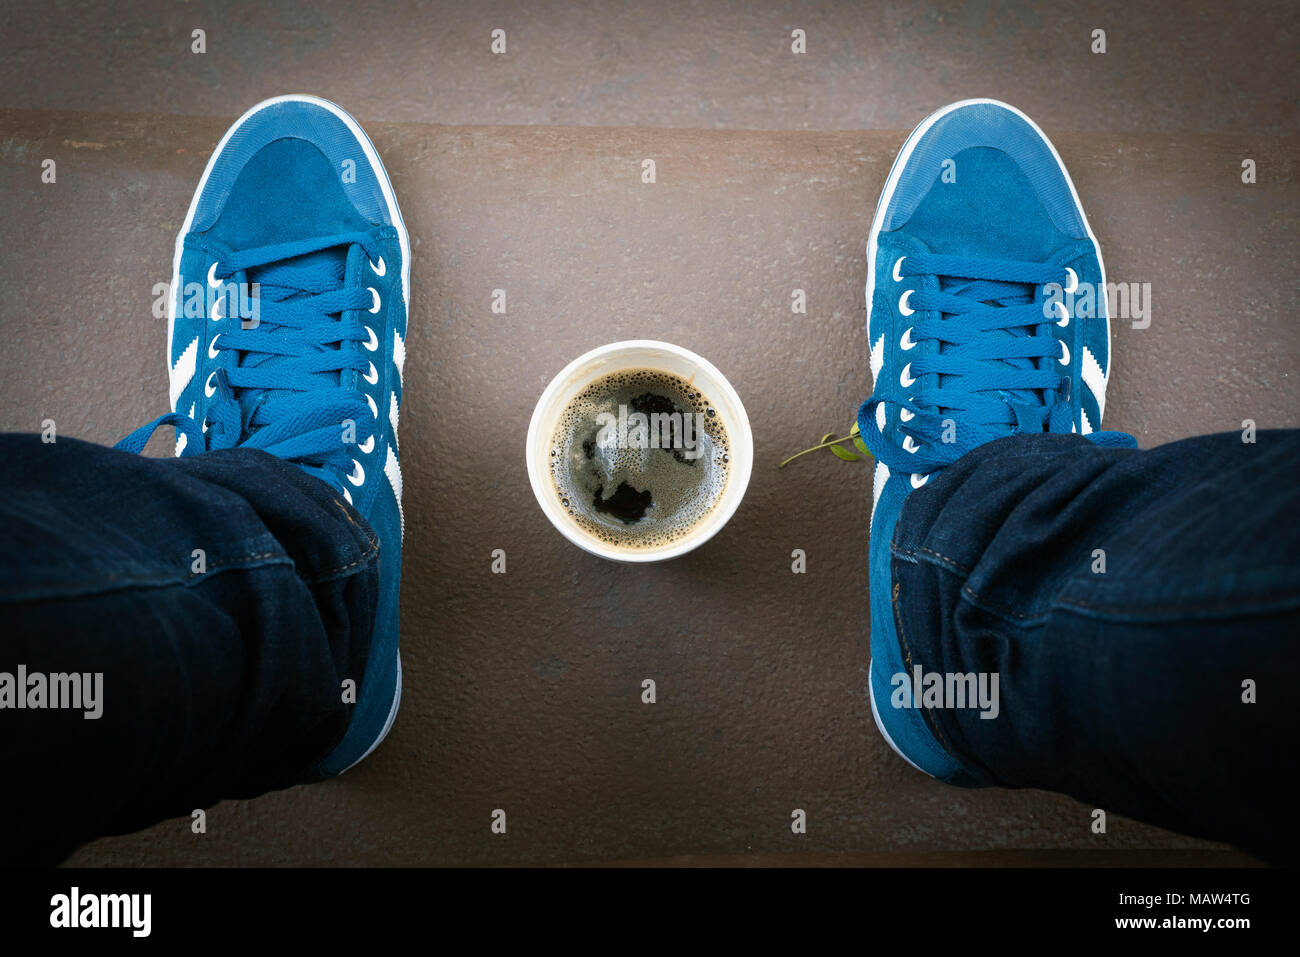 A cup of coffee between two feet. - Stock Image